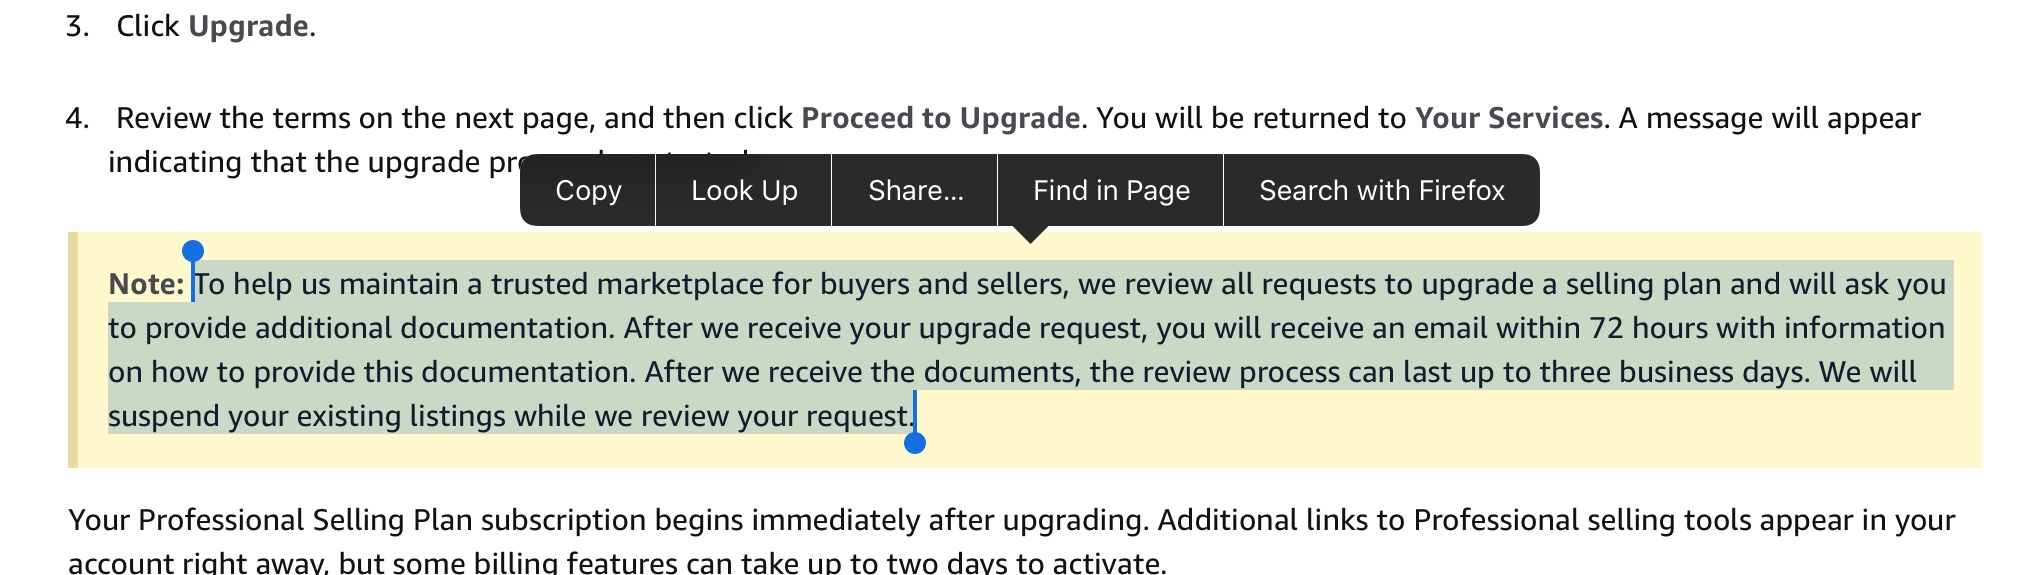 Account suspended 1 week after upgrading to Professional Seller plan